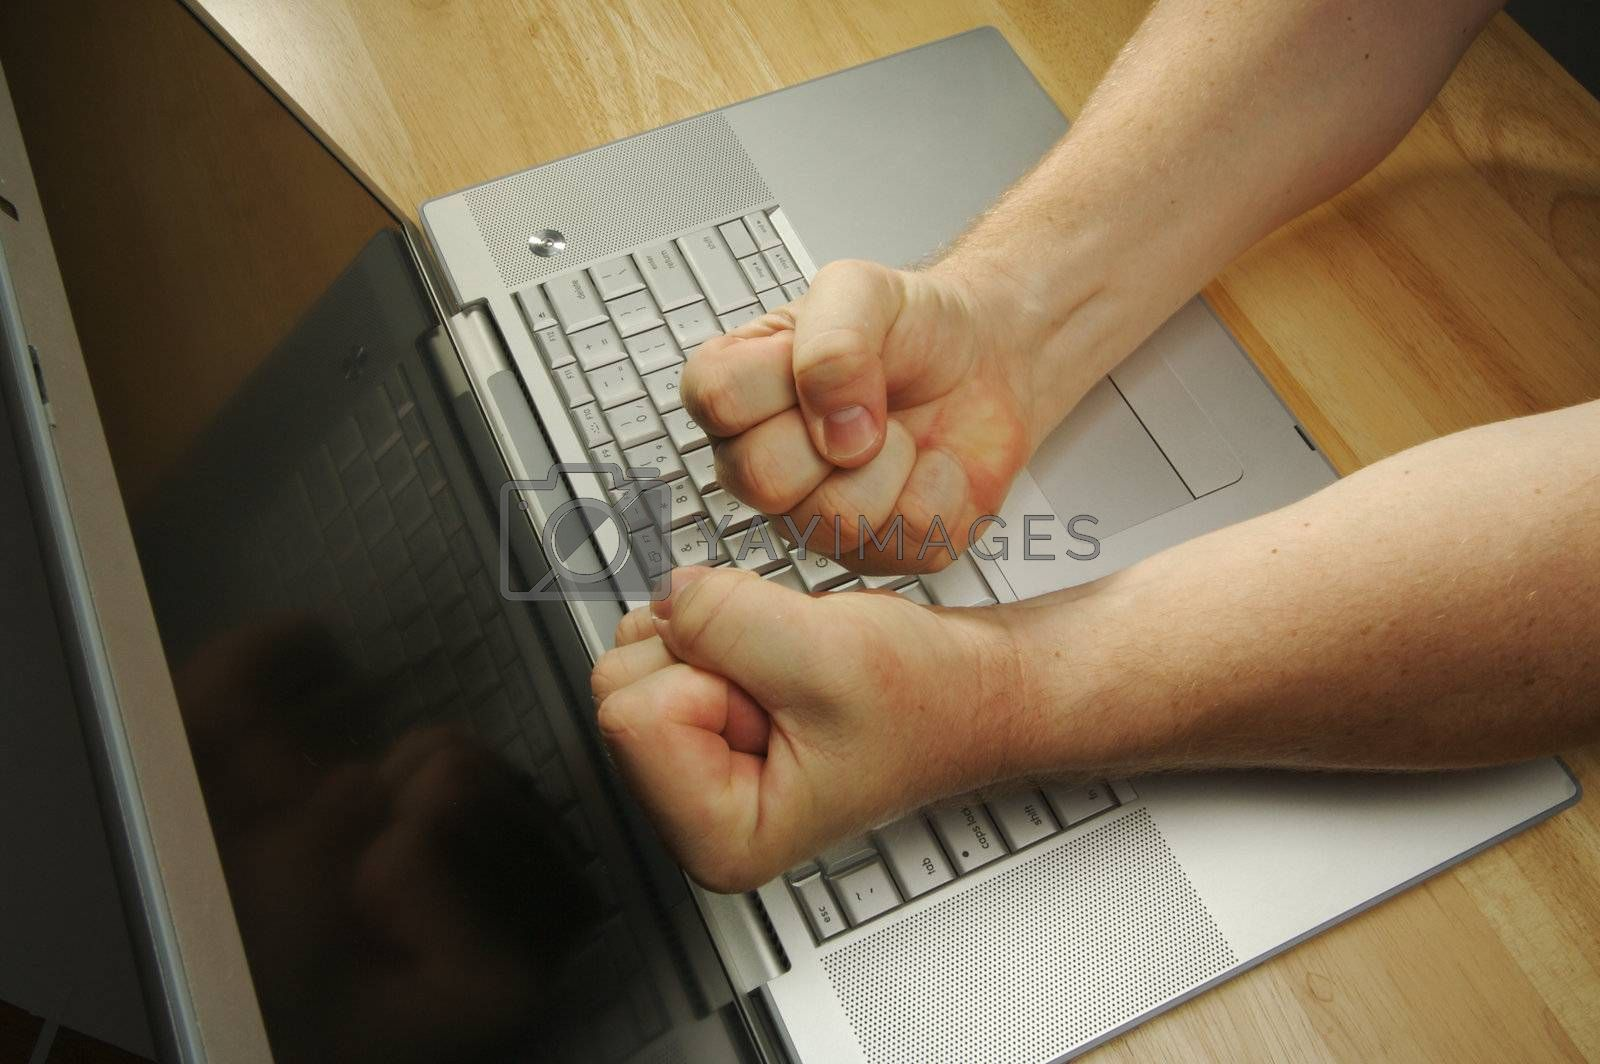 Frustrated businessman shows his frustration while working on his laptop.